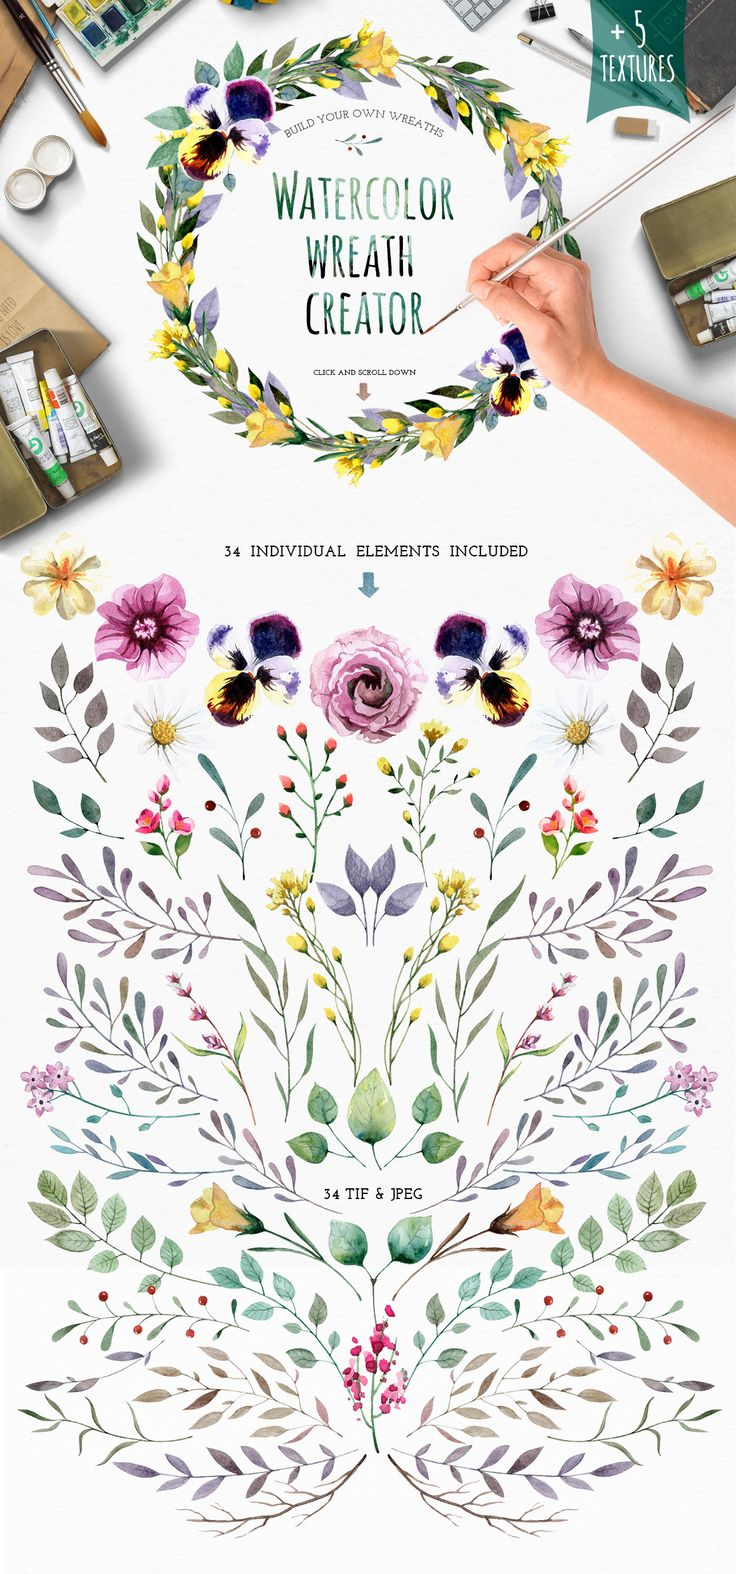 Watercolour elements. Wreath creator by Smotrivnebo on @creativemarket